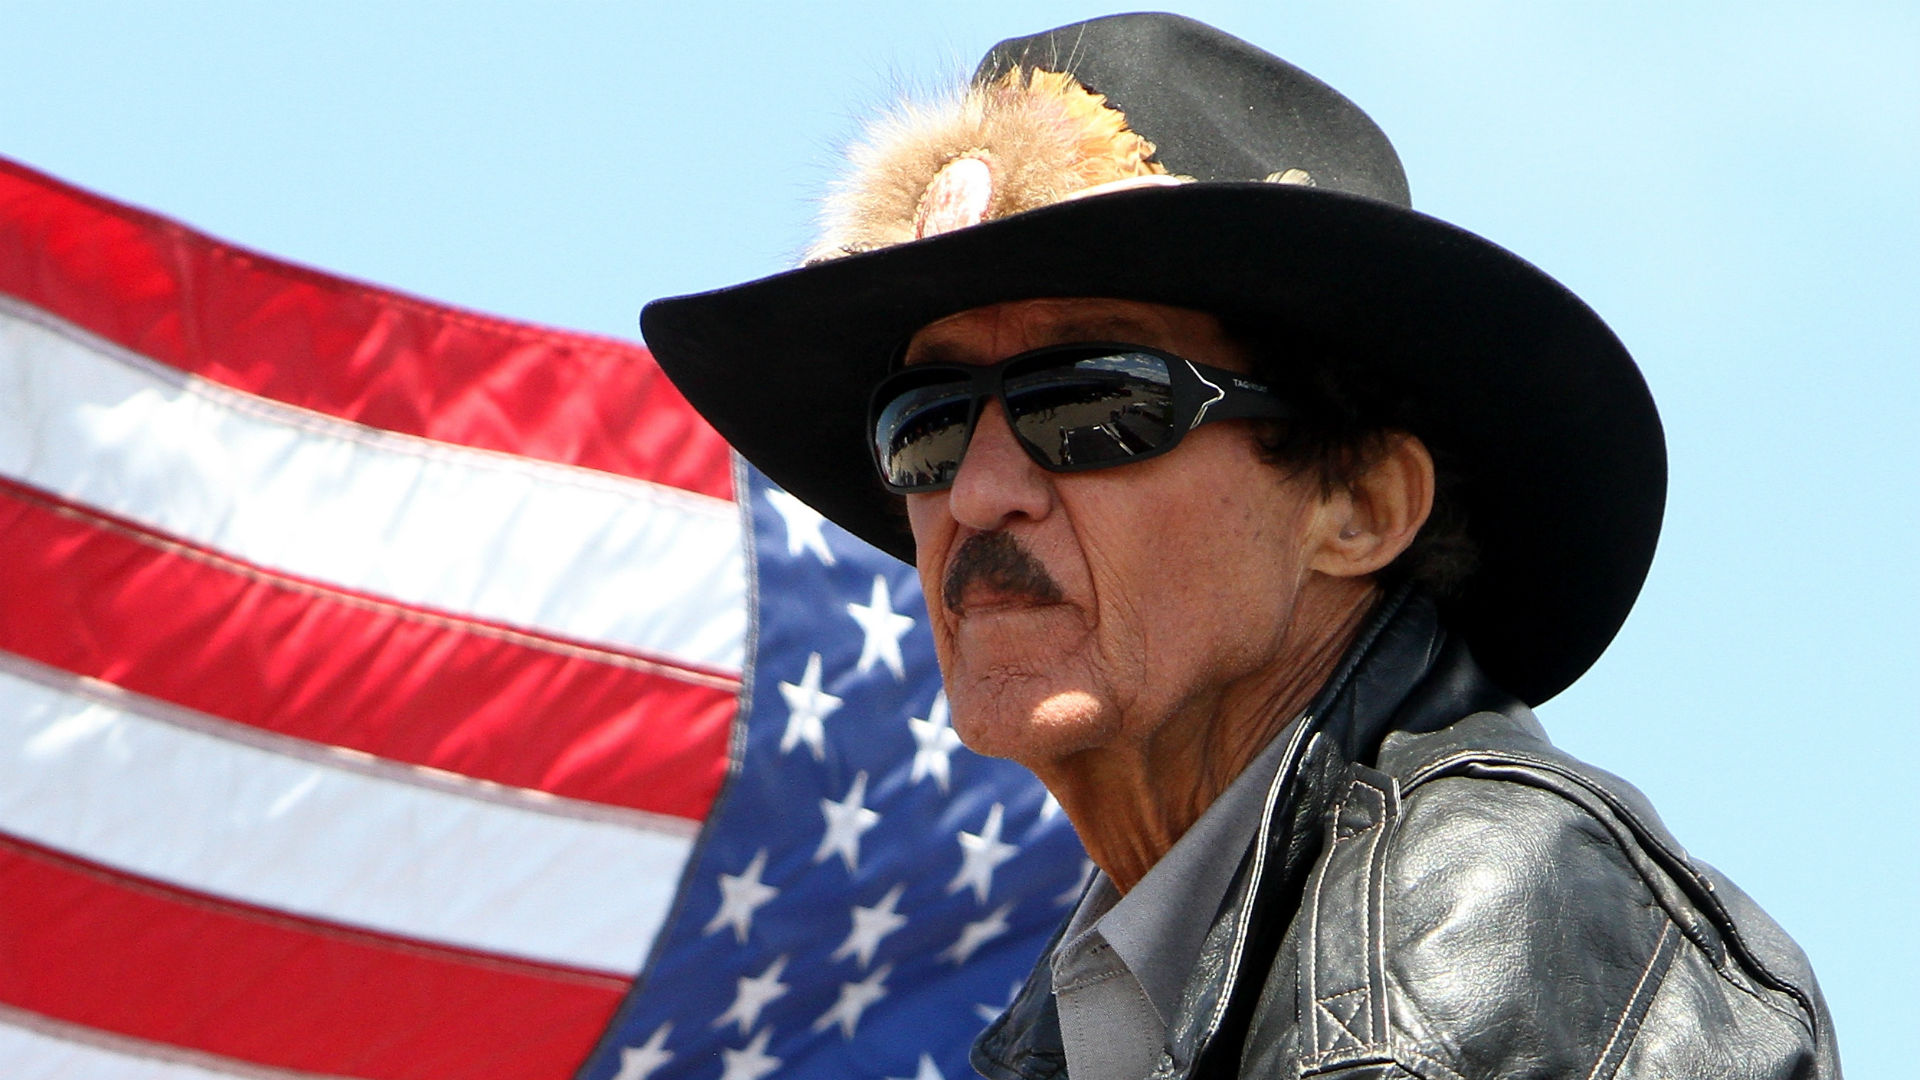 Richard Petty Motorsports switches to Chevrolet, forms alliance with Richard Childress Racing